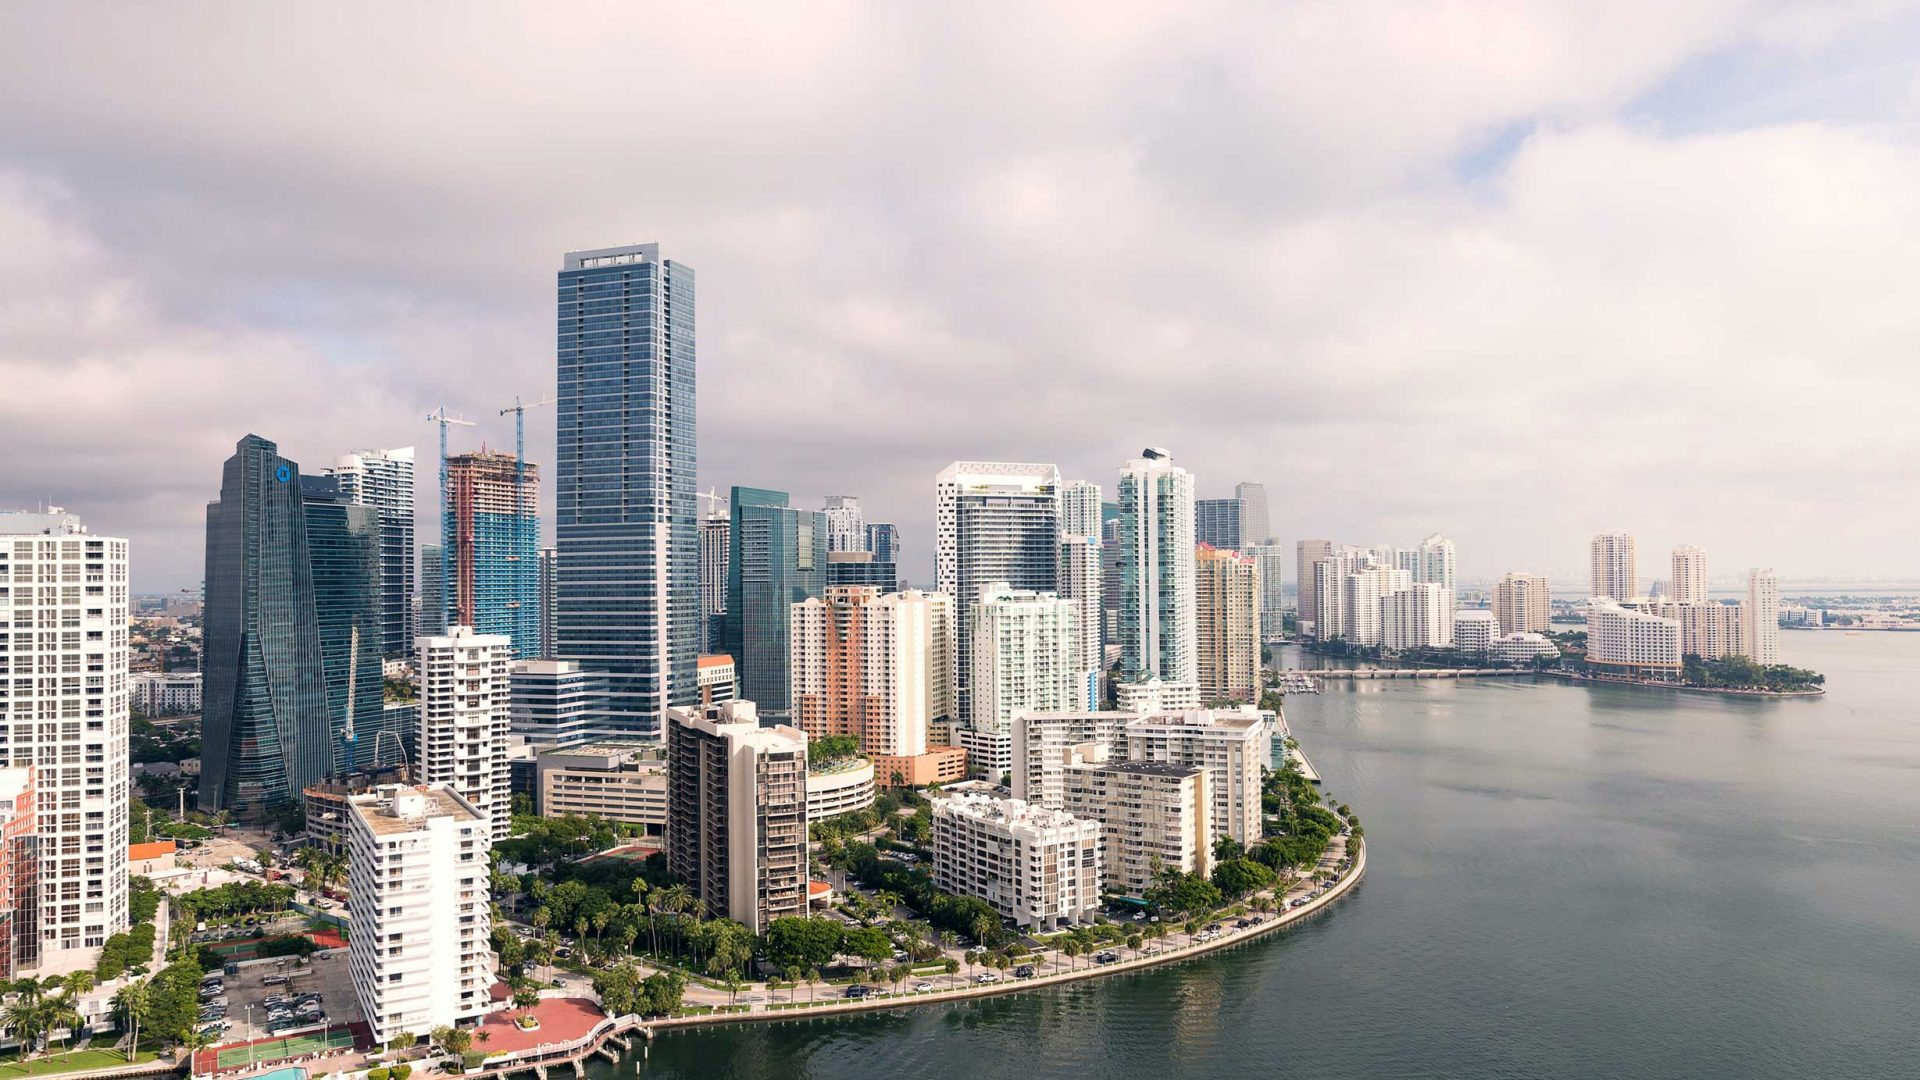 5 Top-Rated Tourist Attractions in Miami